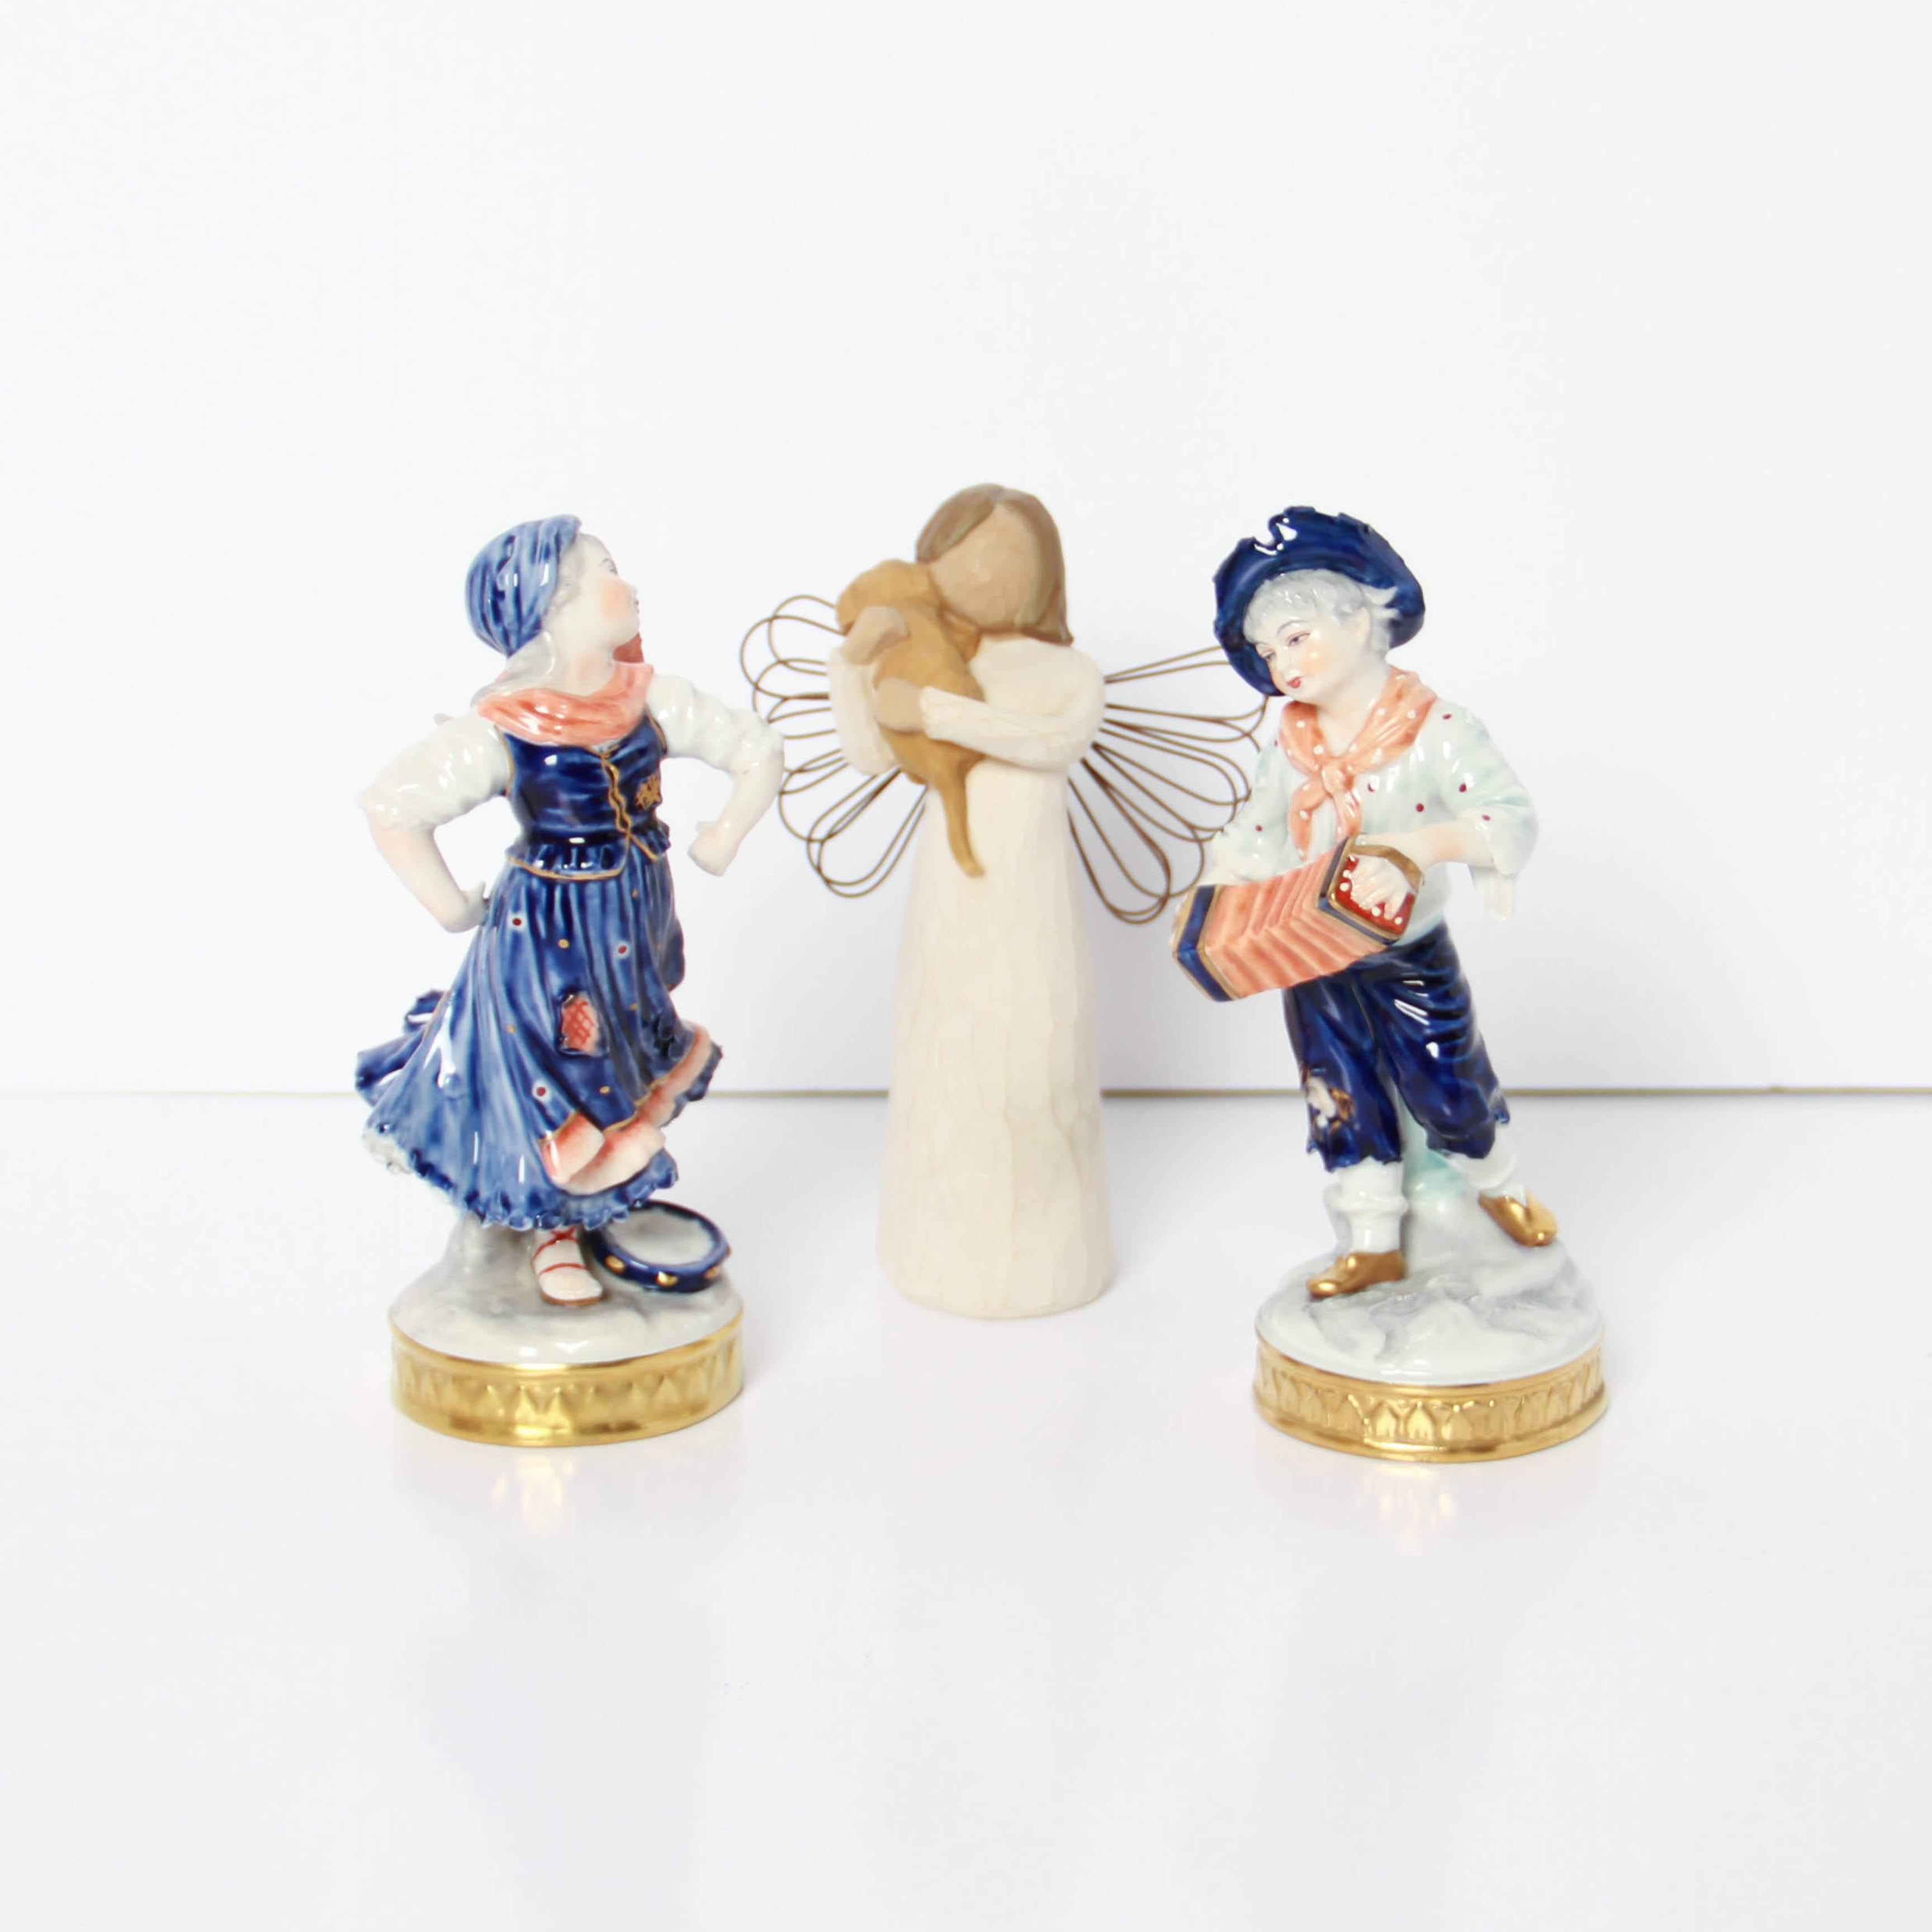 Aelteste Volkstedter Porcelain Figurines and Willow Tree Angel